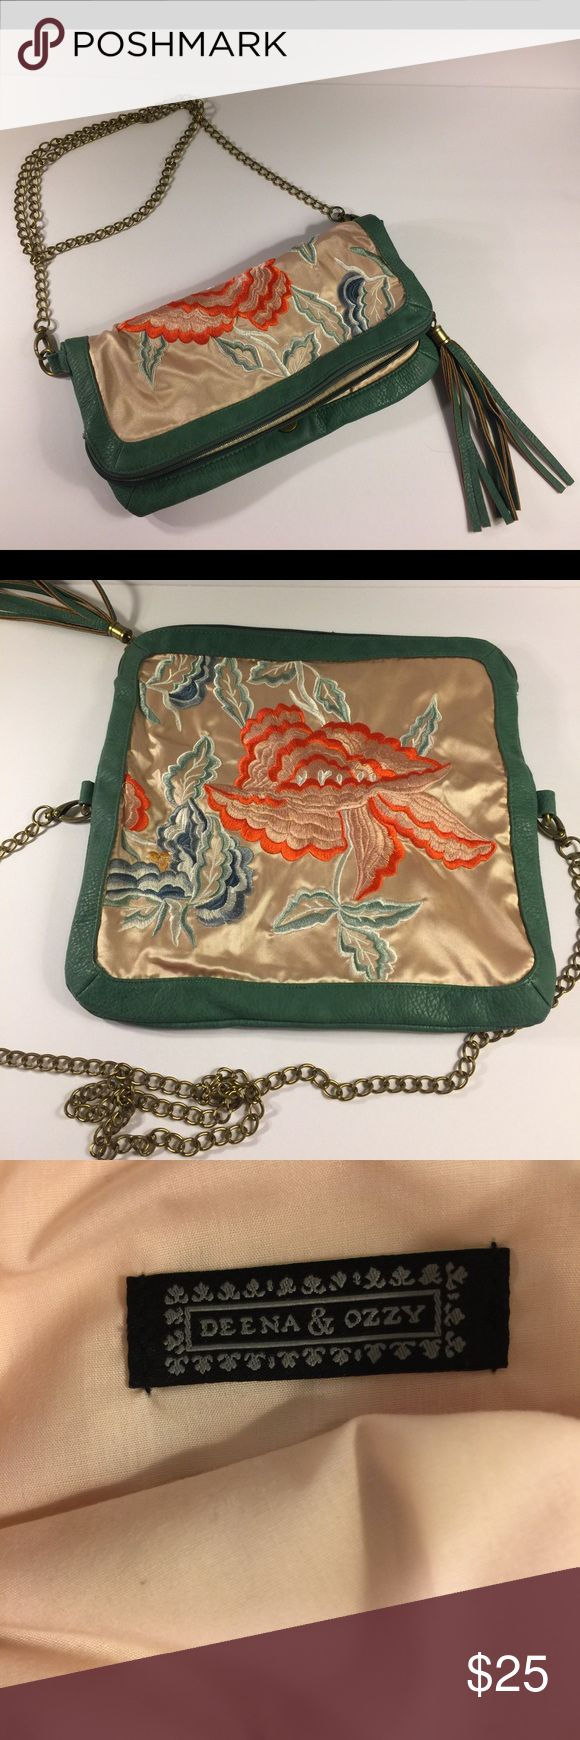 Deena & ozzy crossbody silk purse Floral & teal Teal accents along with beige silk background and Floral print. Gold chain. Deena and ozzy. Deena & Ozzy Bags Crossbody Bags